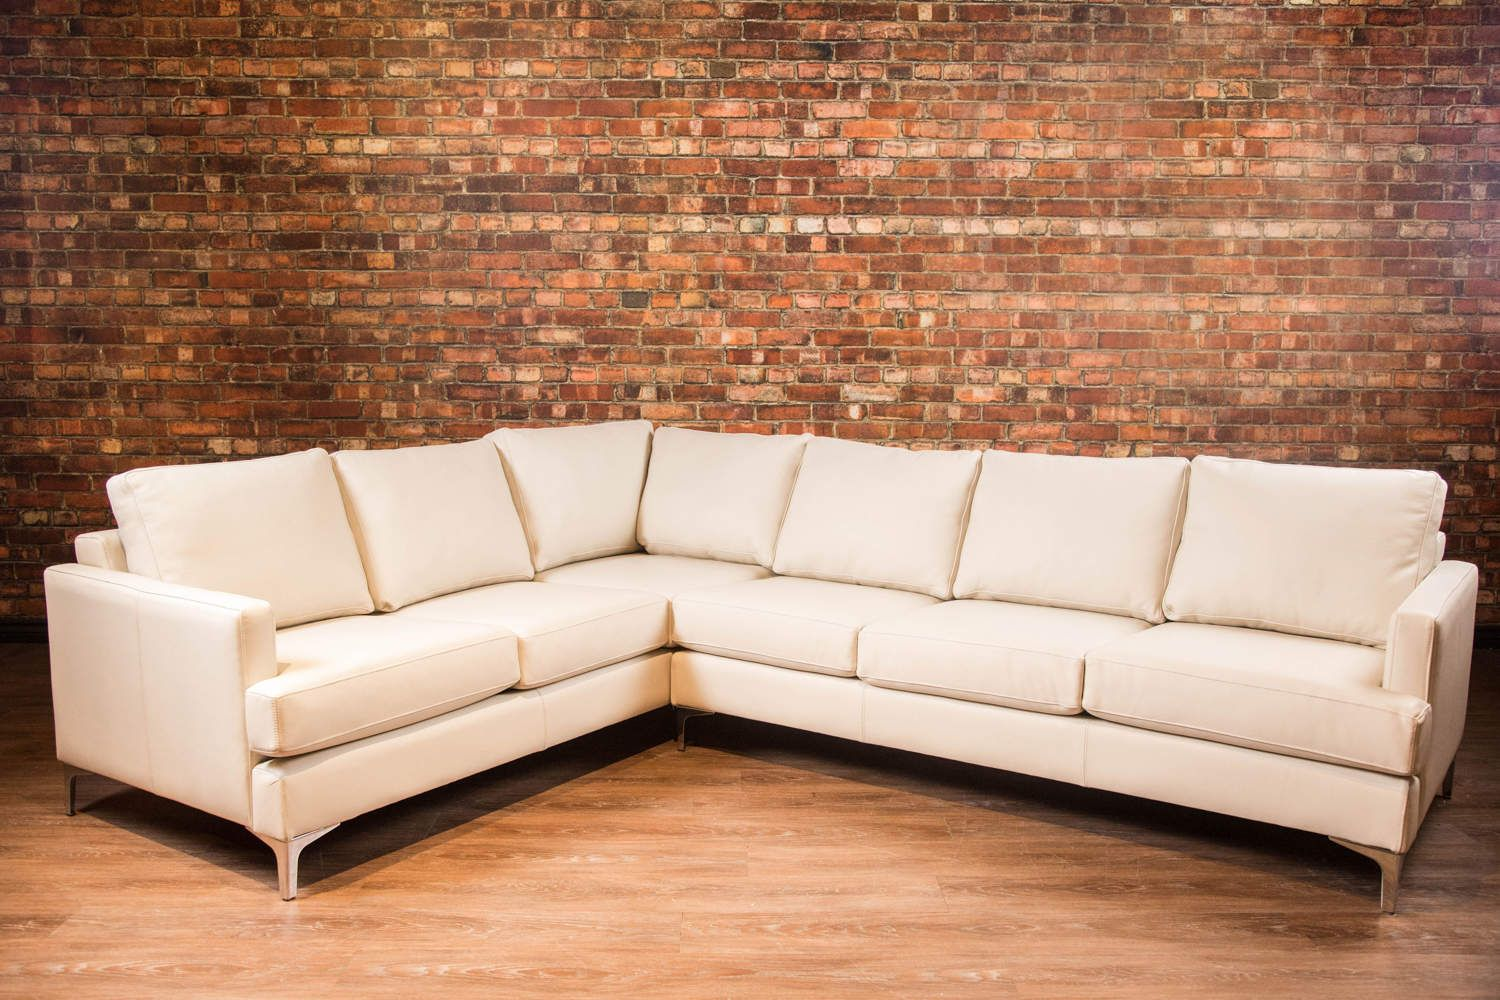 New york new york sectional condo series leather sectional custom furniture furniture making